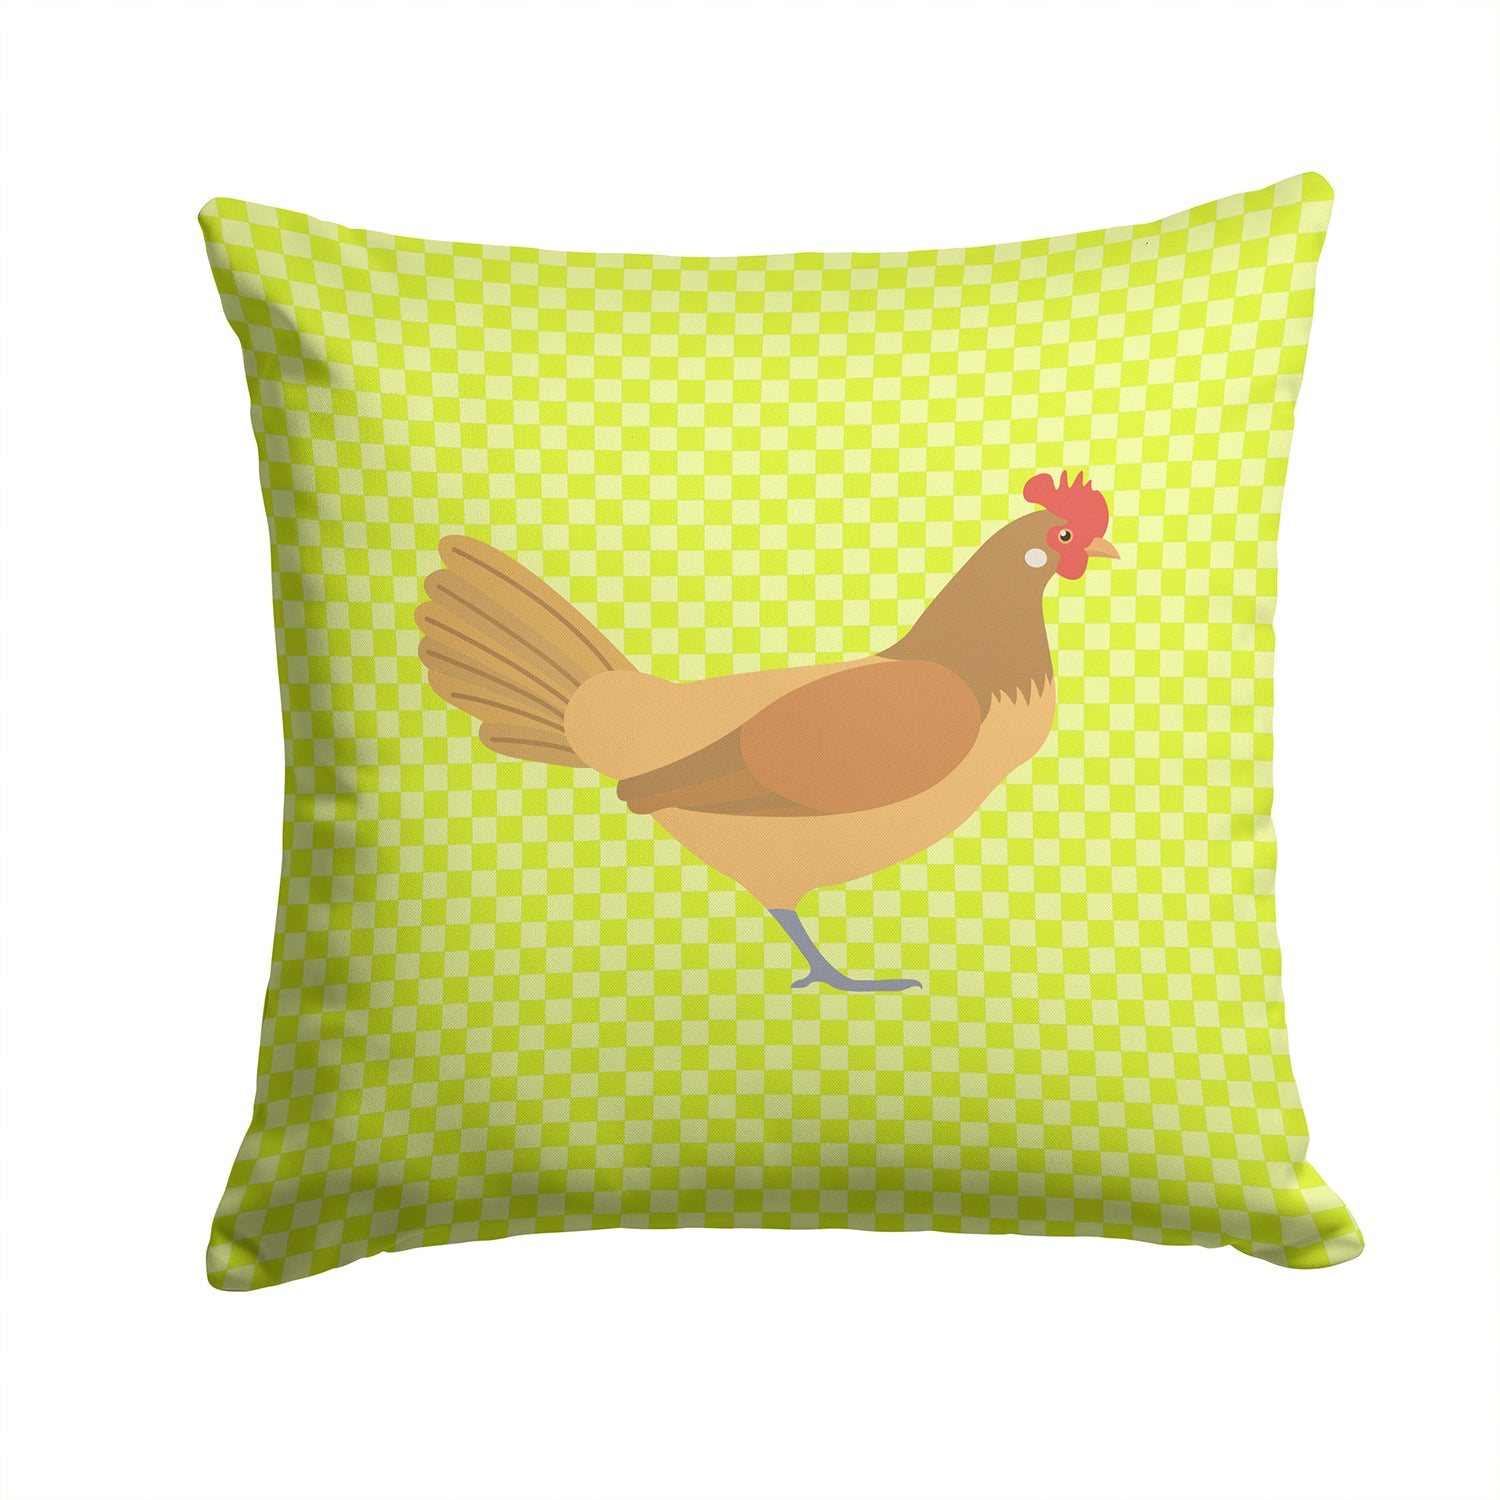 Frisian Friesian Chicken Green Fabric Decorative Pillow BB7658PW1414 by Caroline's Treasures